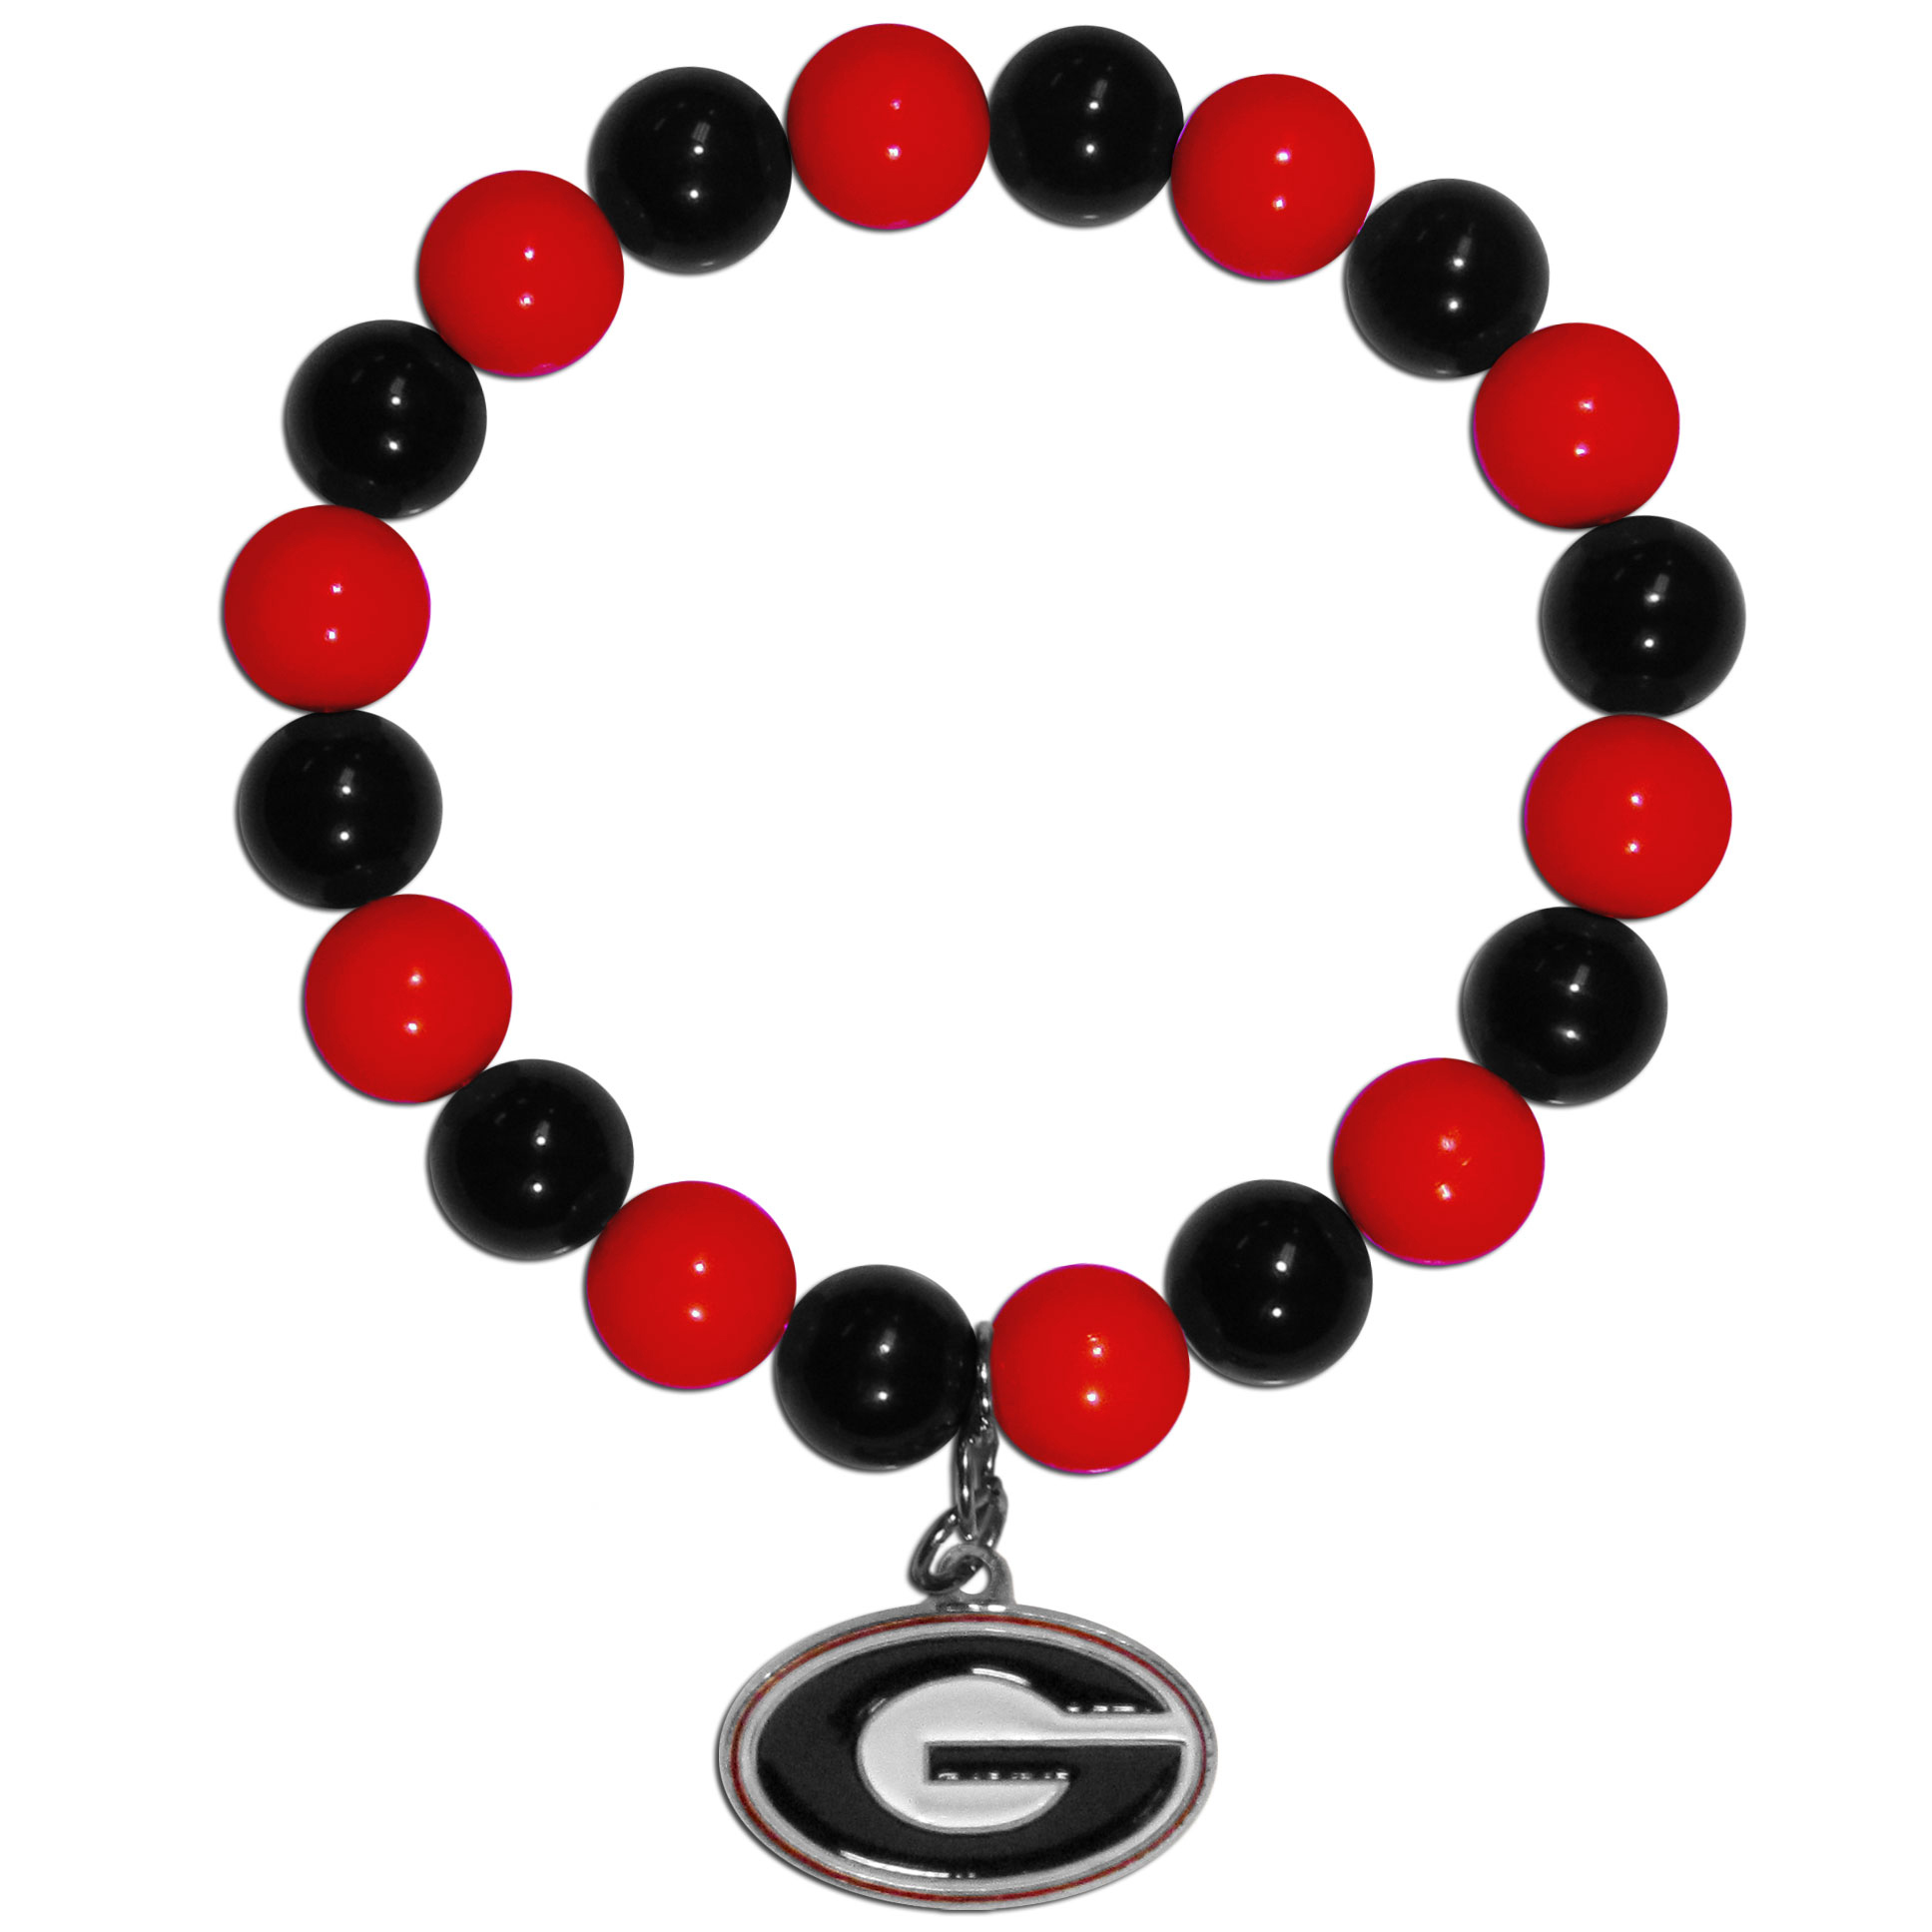 Georgia Bulldogs Fan Bead Bracelet - Flash your Georgia Bulldogs spirit with this bright stretch bracelet. This new bracelet features multicolored team beads on stretch cord with a nickel-free enameled chrome team charm. This bracelet adds the perfect pop of color to your game day accessories.